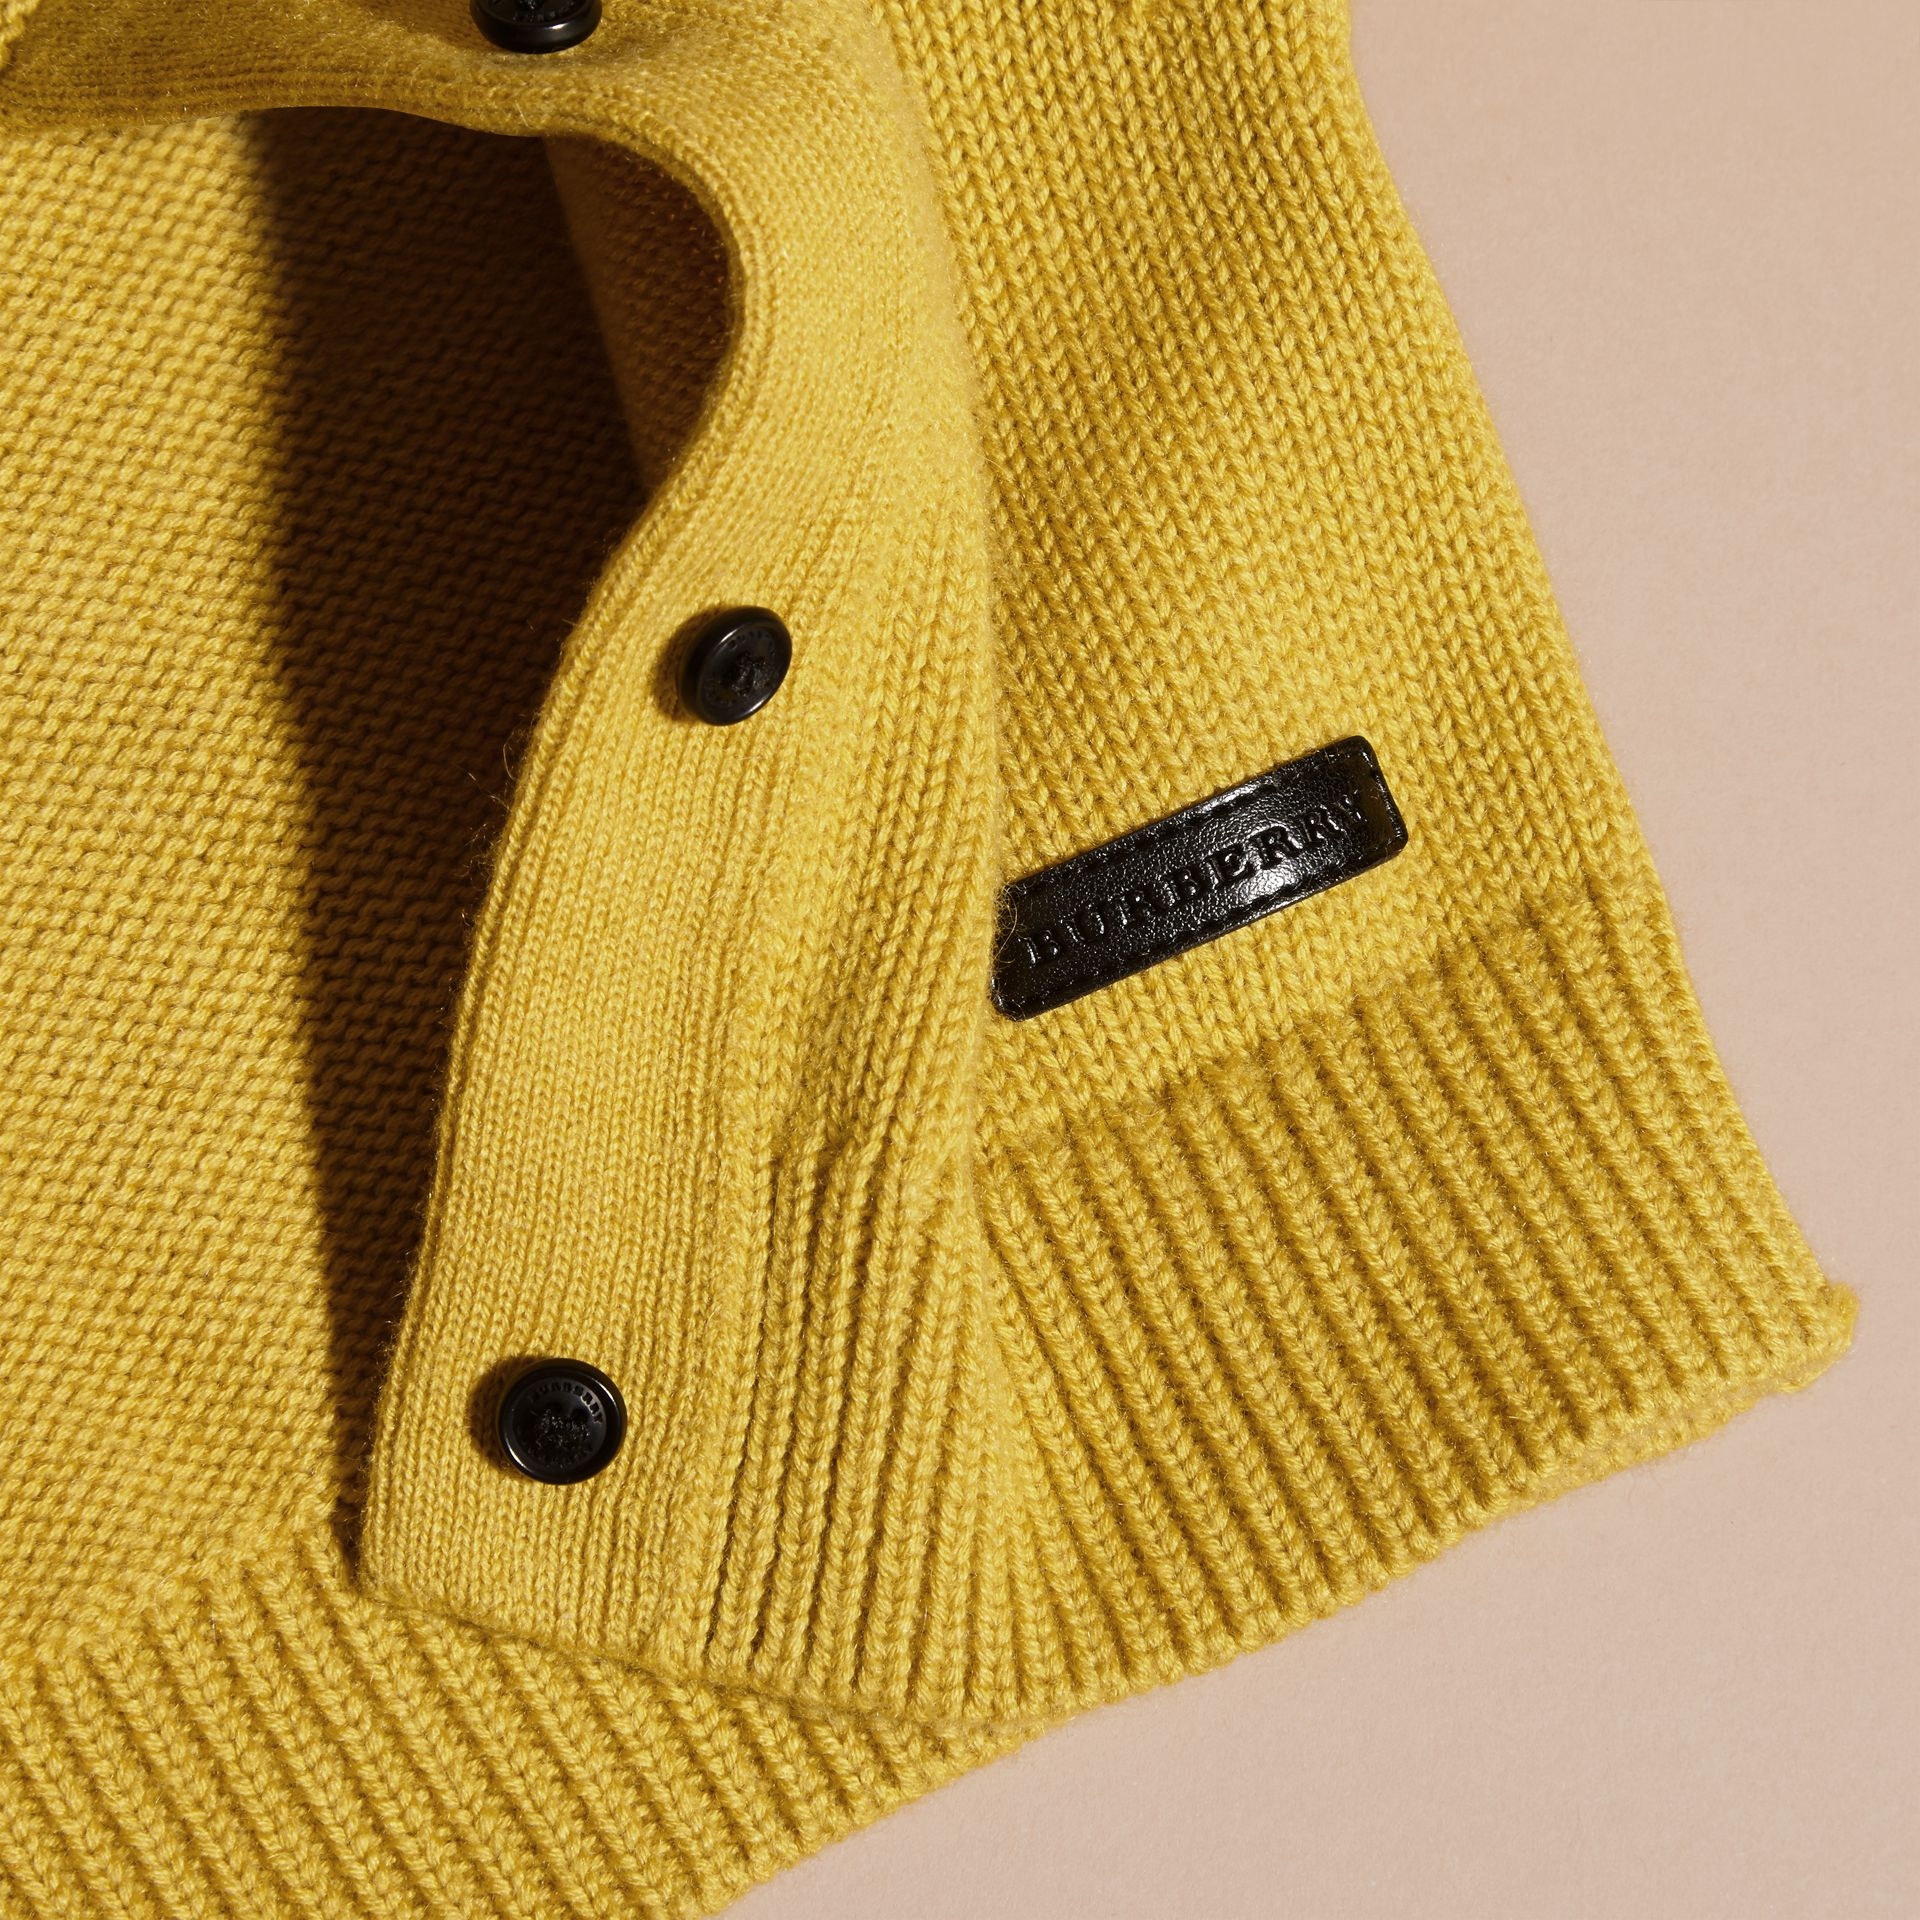 Ochre yellow Cashmere Cotton Cardigan Ochre Yellow - gallery image 2